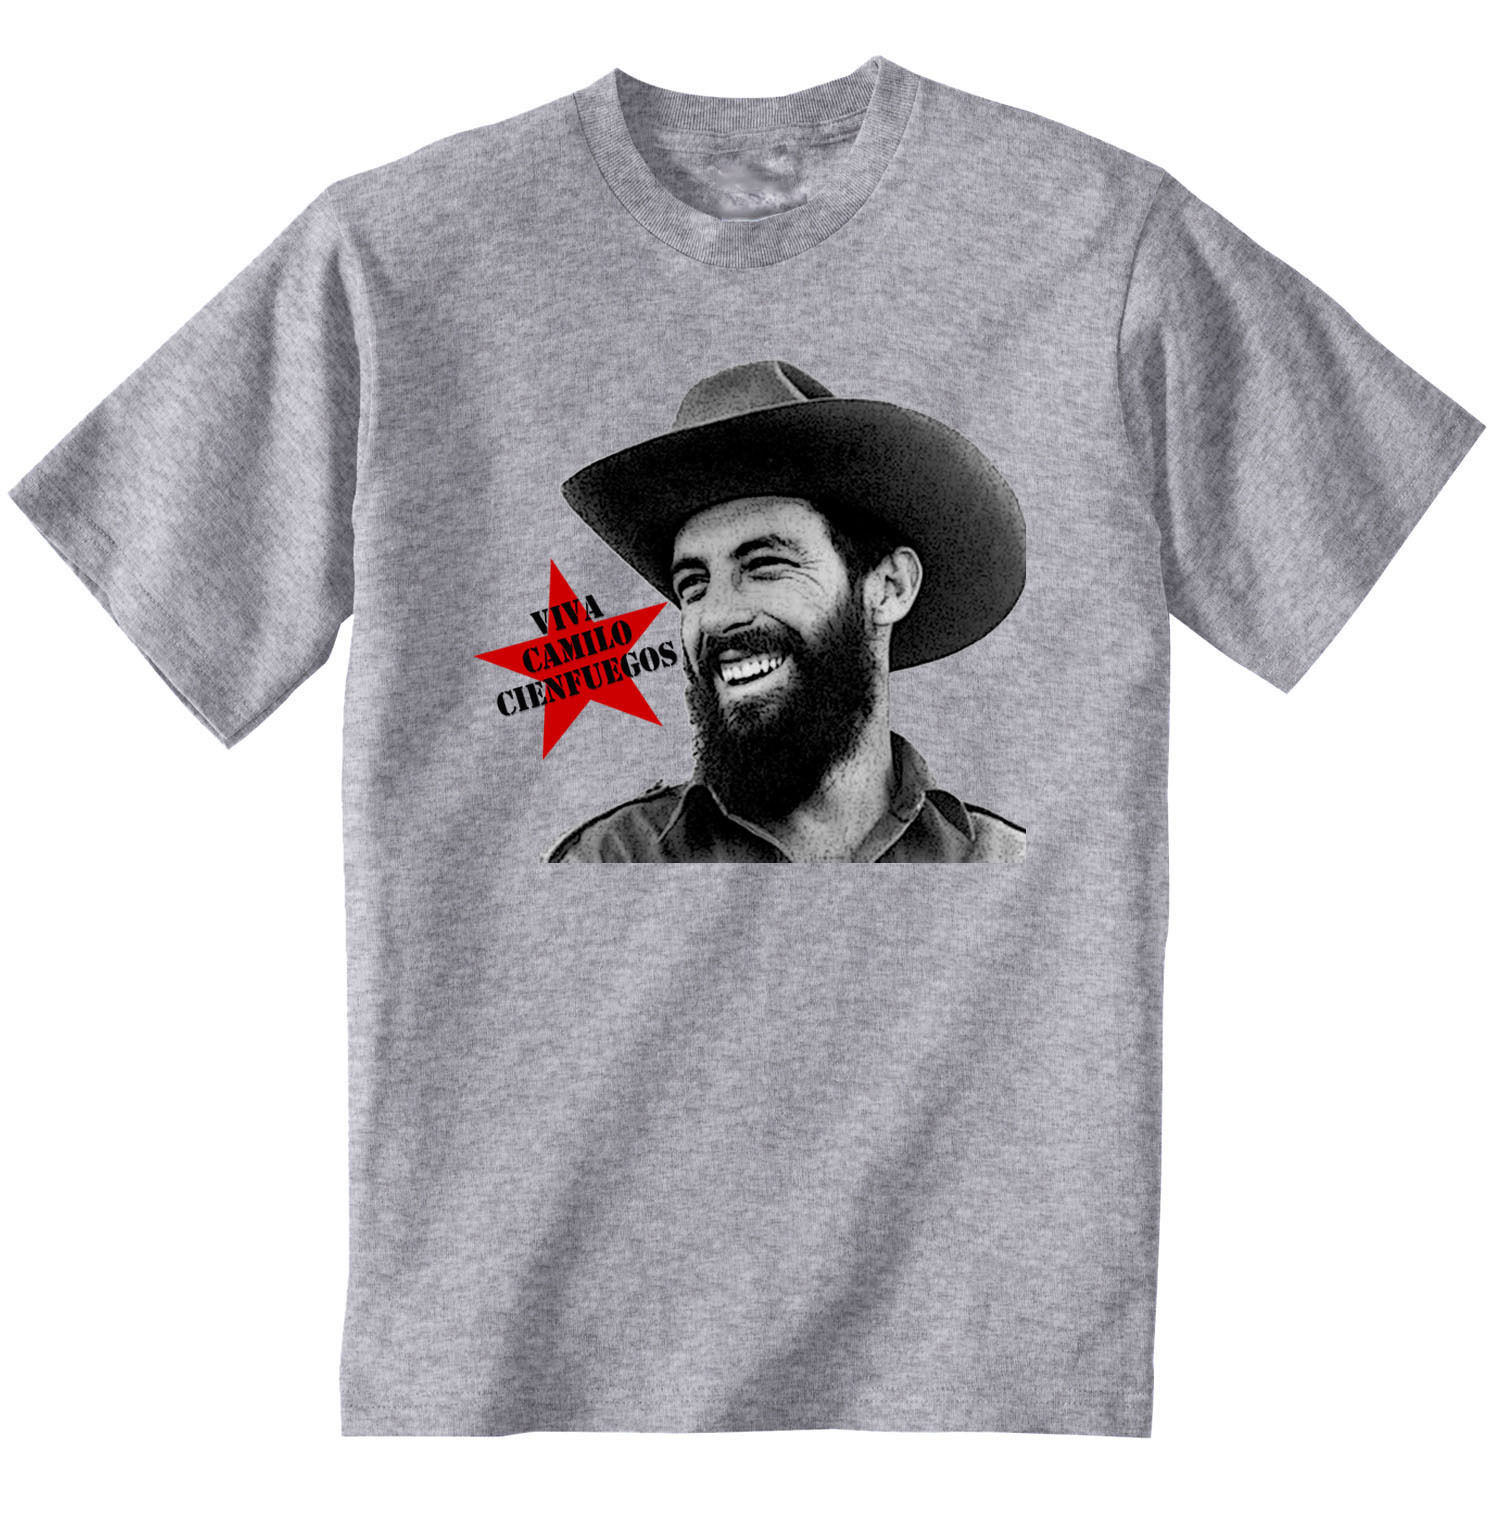 CAMILO CIENFUEGOS CUBAN REVOLUTION - NEW COTTON GREY TSHIRT